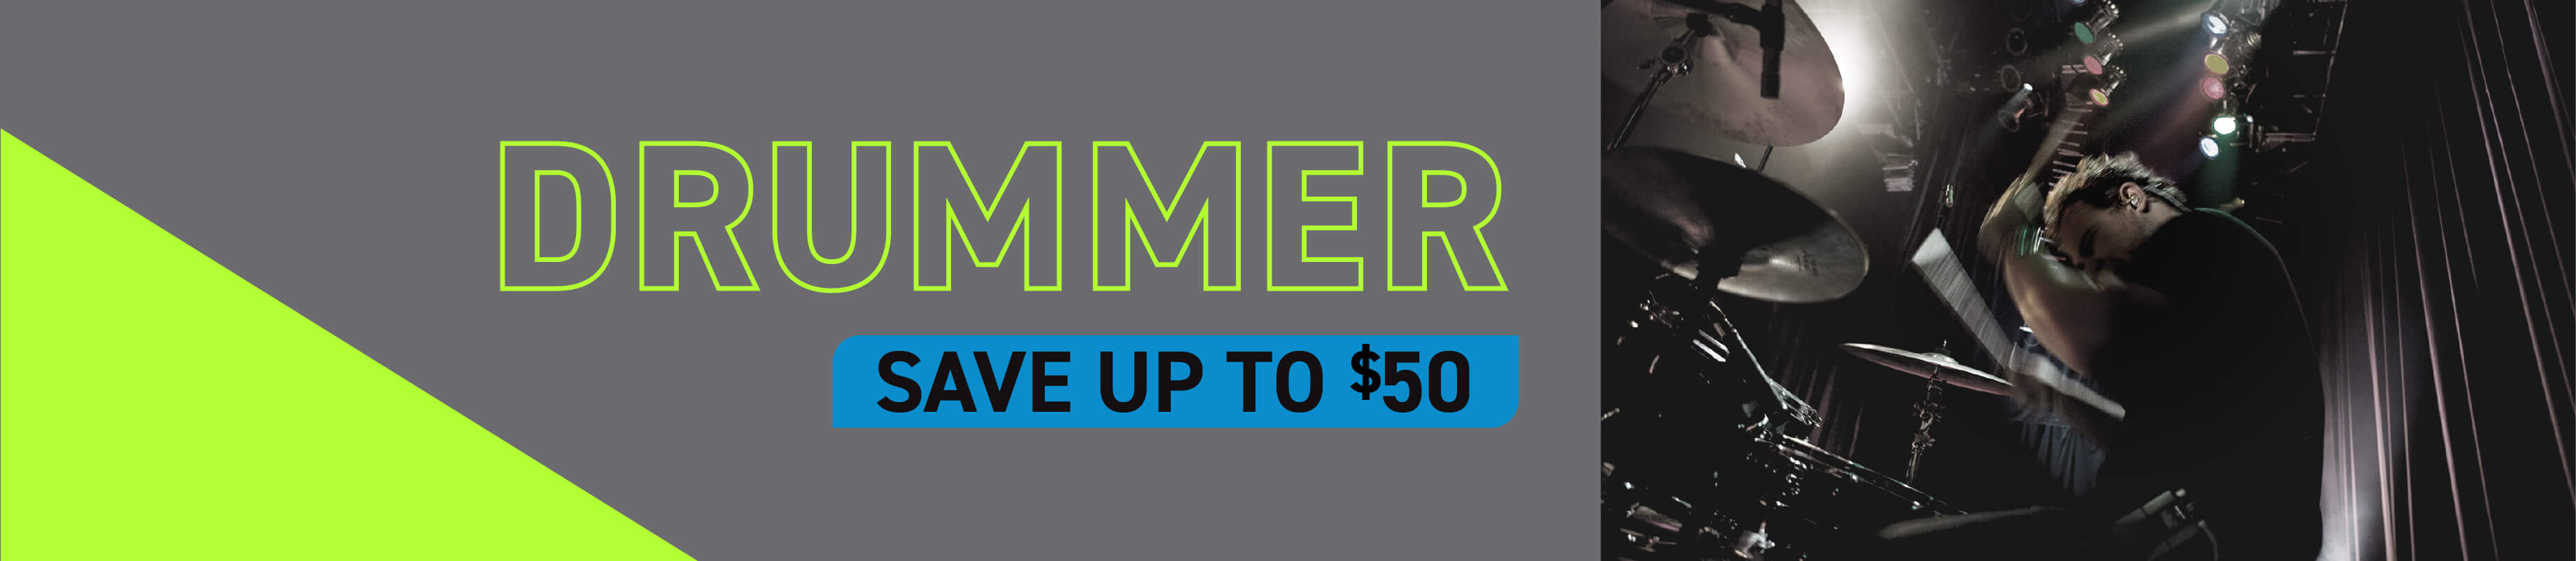 Drummer | Save up to $50